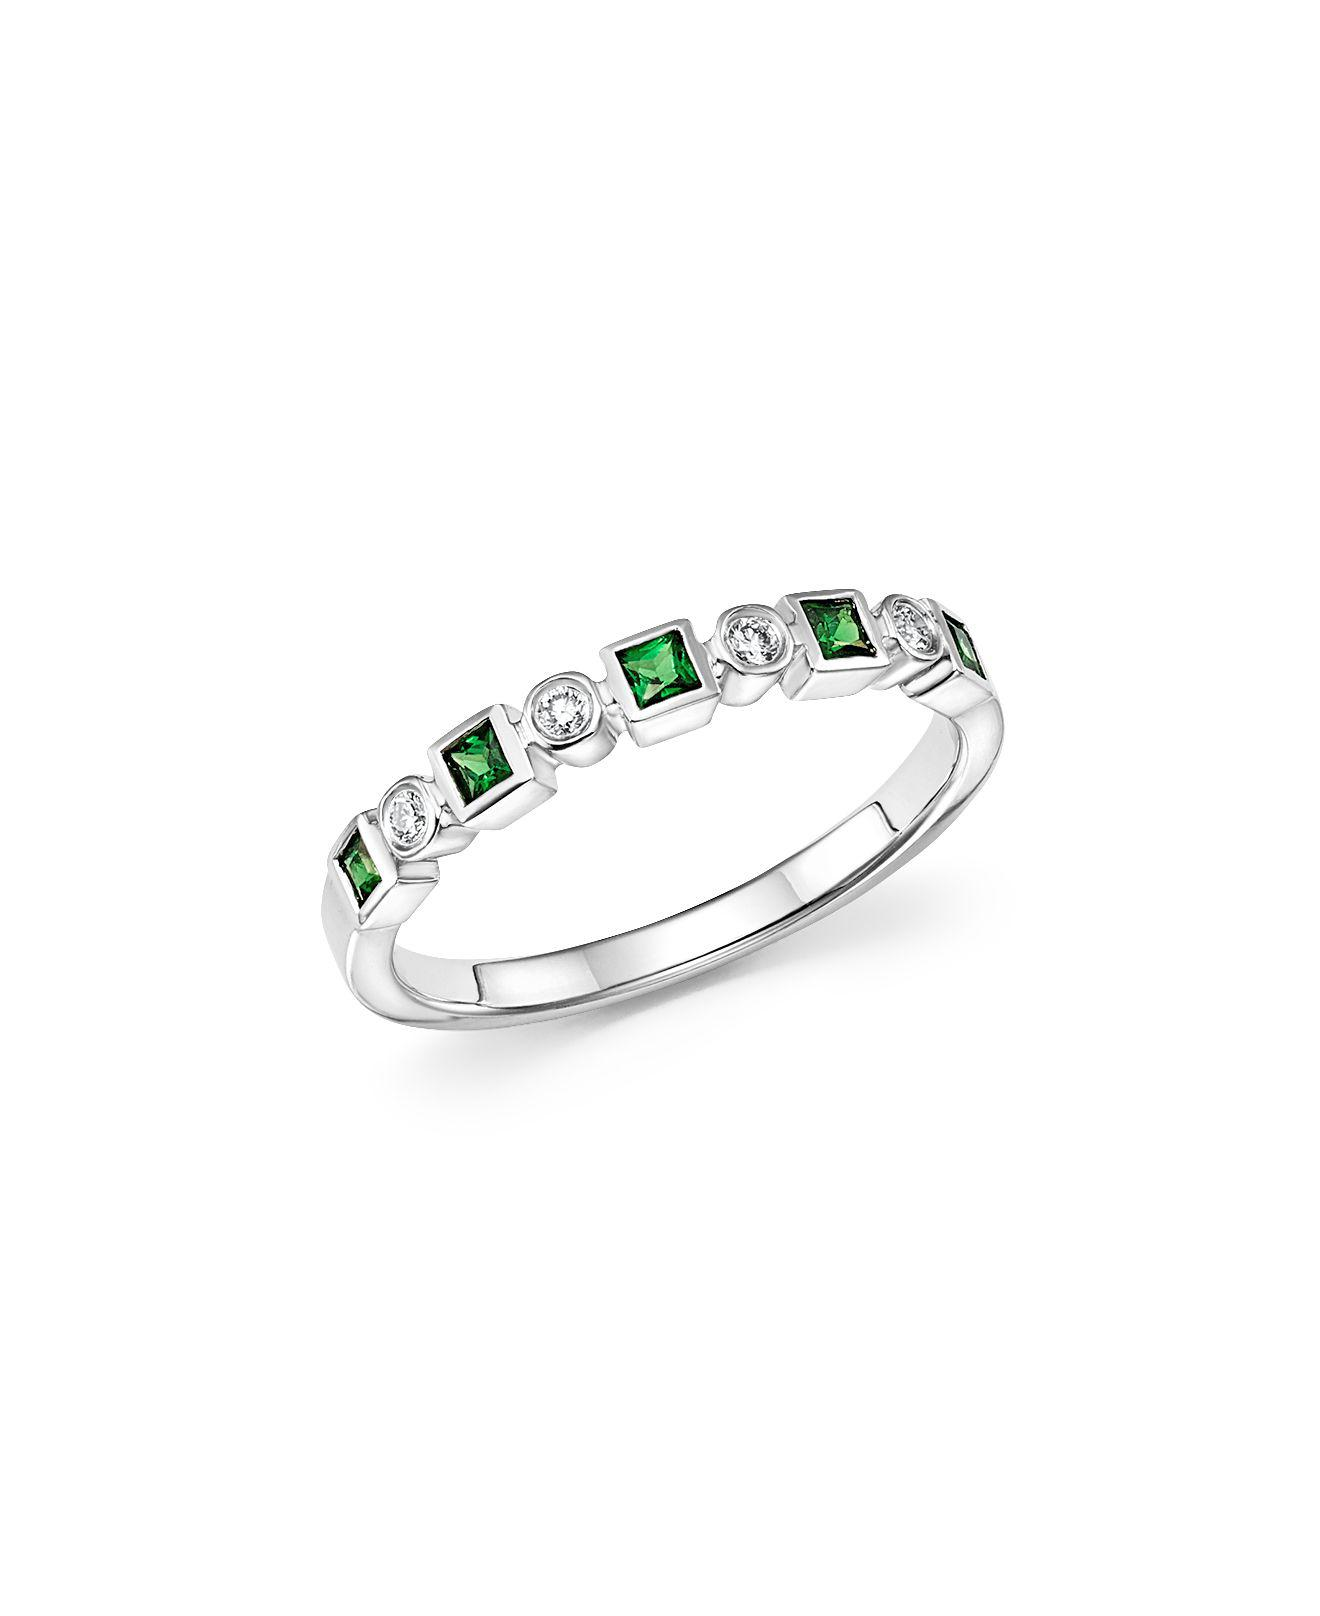 Lana Jewelry Electric 14K Black Gold Stacking Ring with Green Tsavorite, Size 7